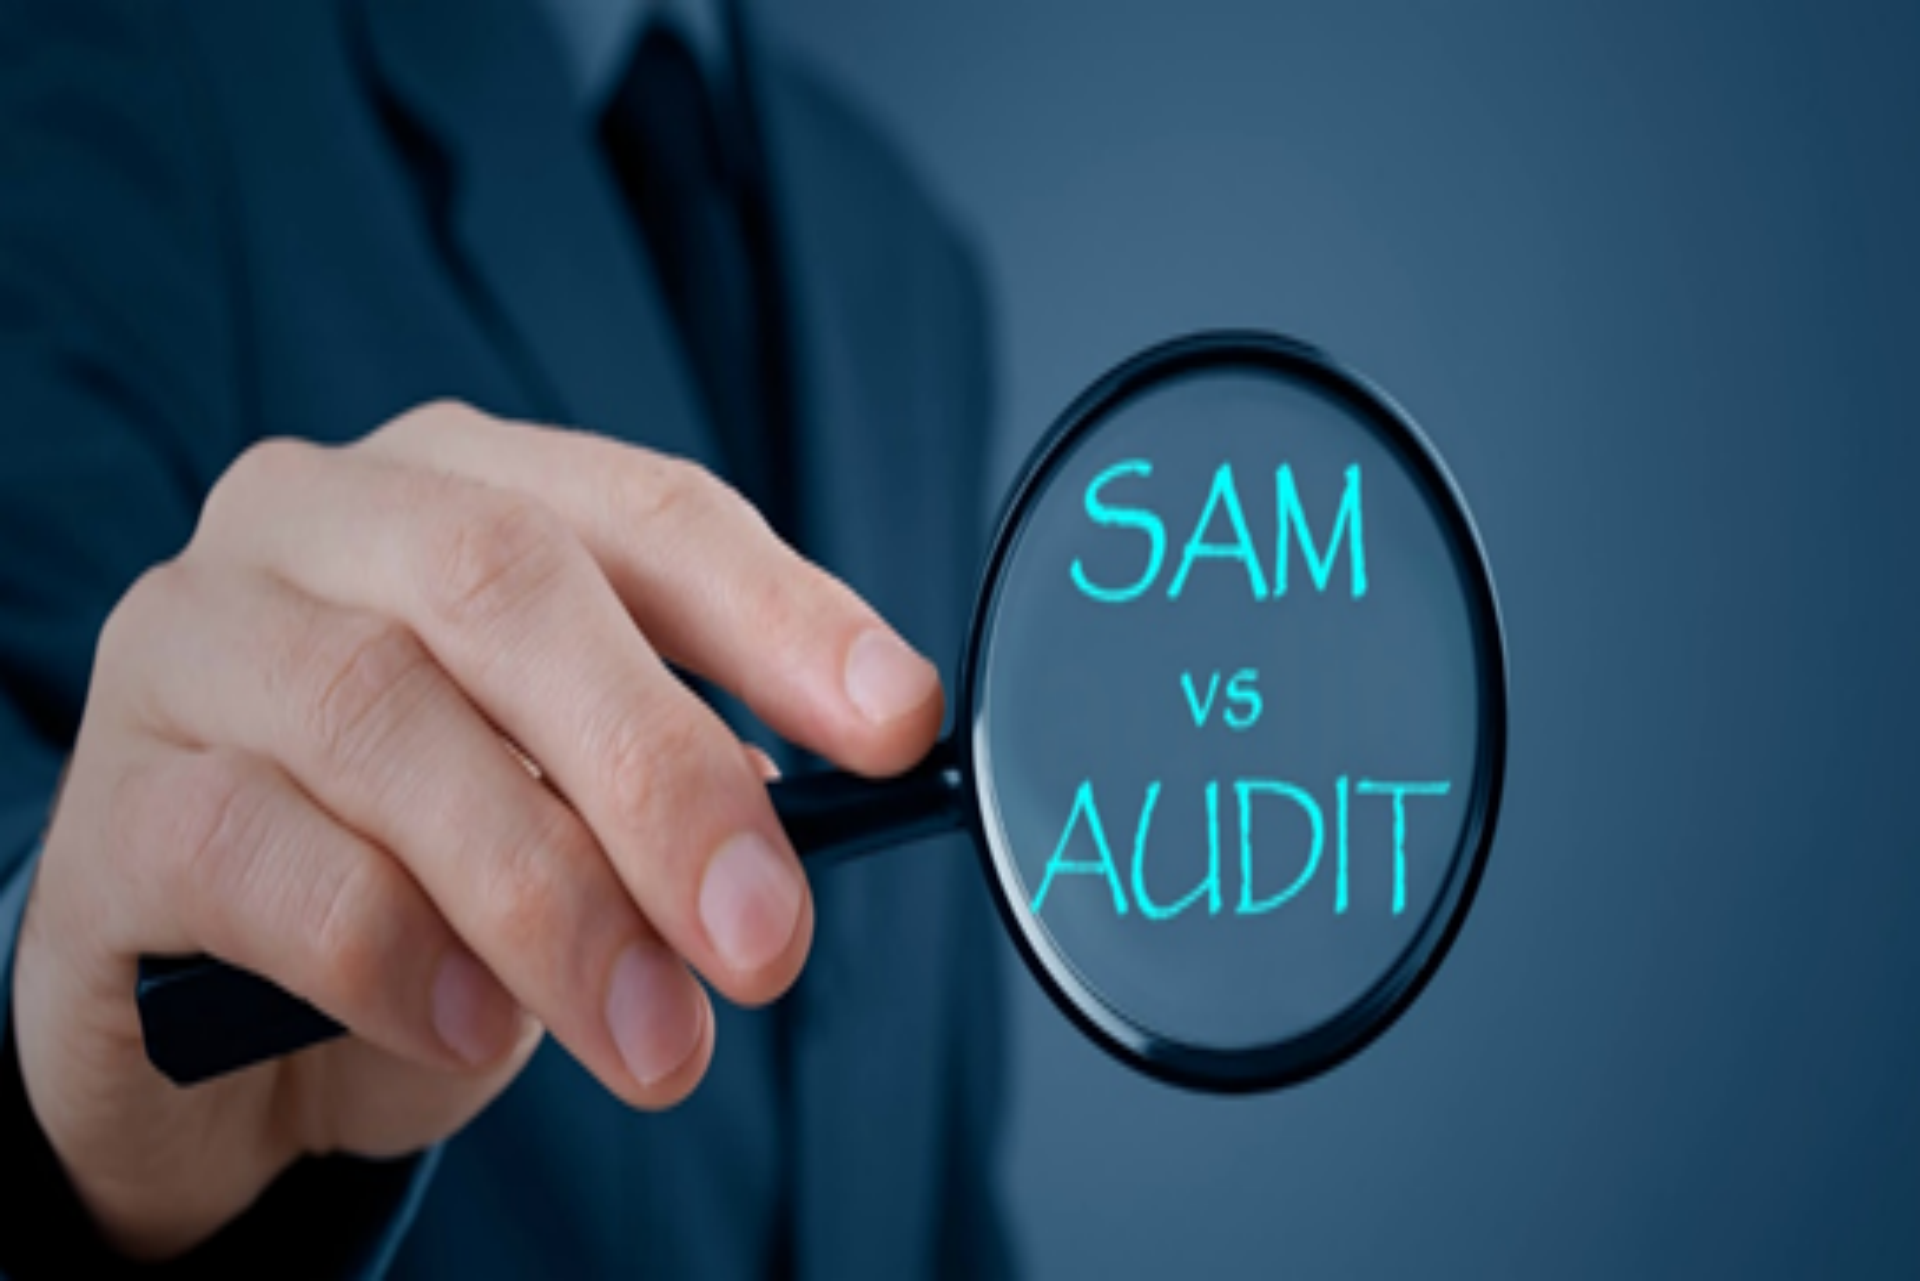 How does a Microsoft SAM differ from an Audit?